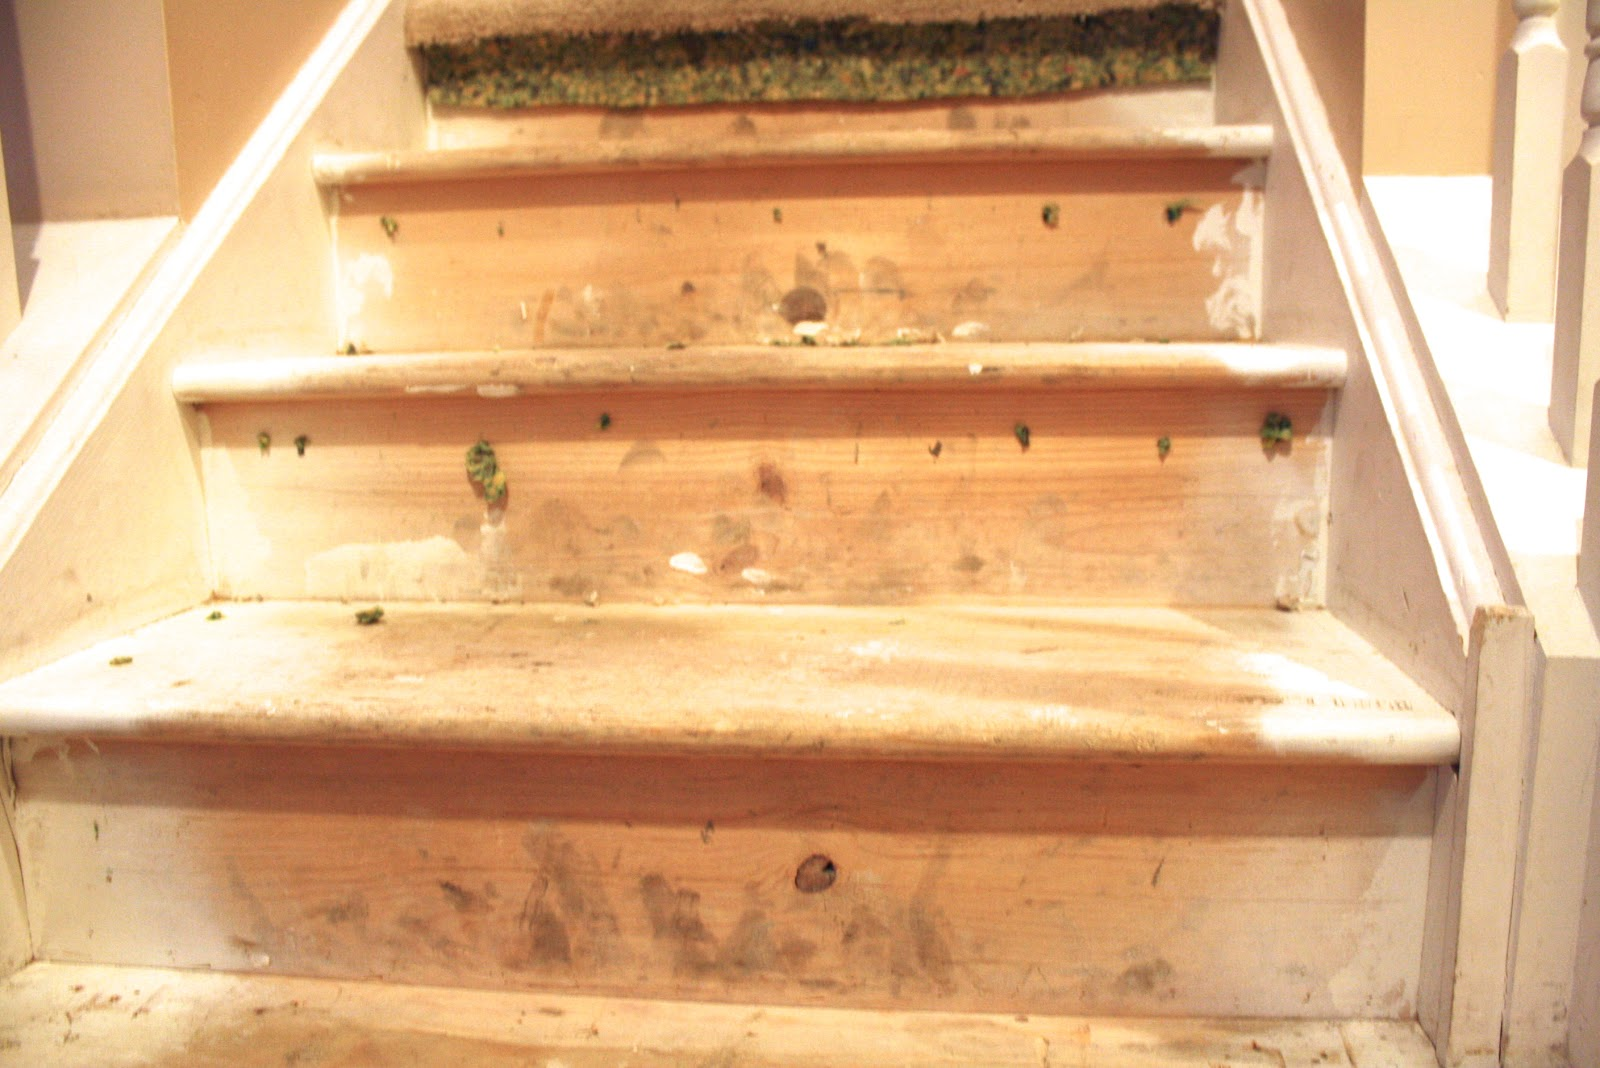 Pergo XP Laminate Review further Asbestos In Carpets further How To Remove Carpet Tack Strips From Wood also Old Hessian Carpet Underlay as well Removing Old Worn Out Carpet My Stairs. on removing old carpet padding